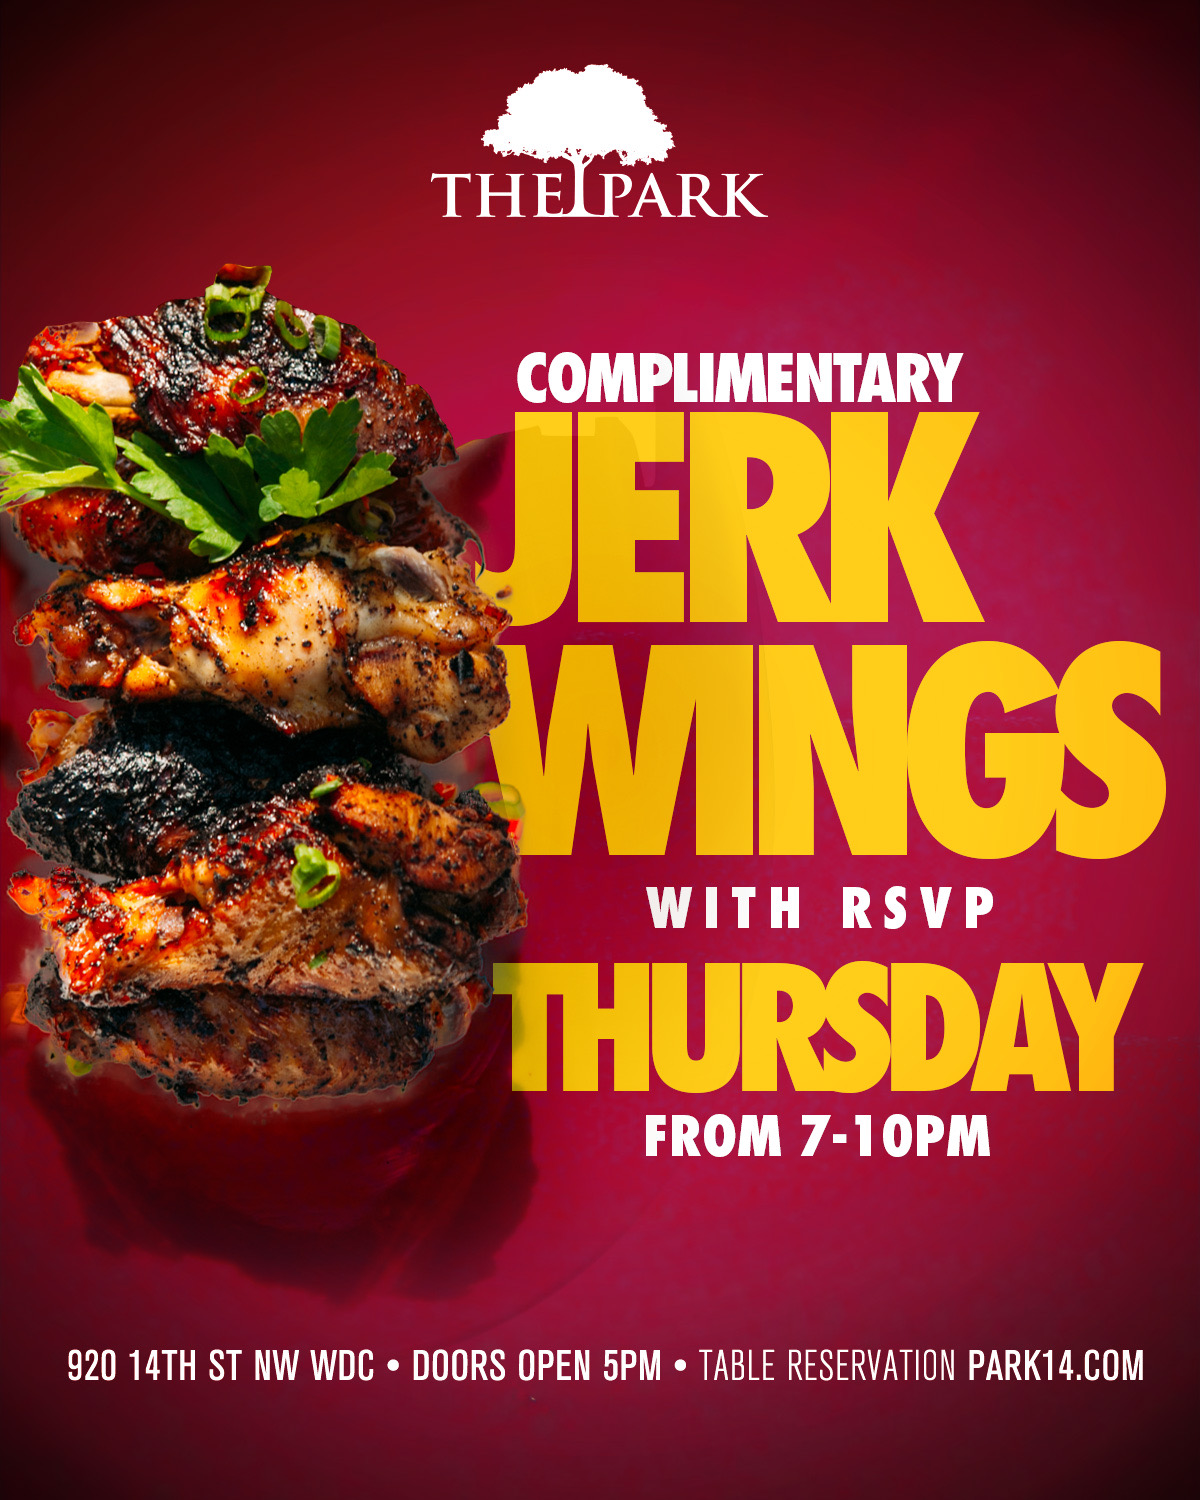 Complimentary-Jerk-Wings-&-Mac.jpeg